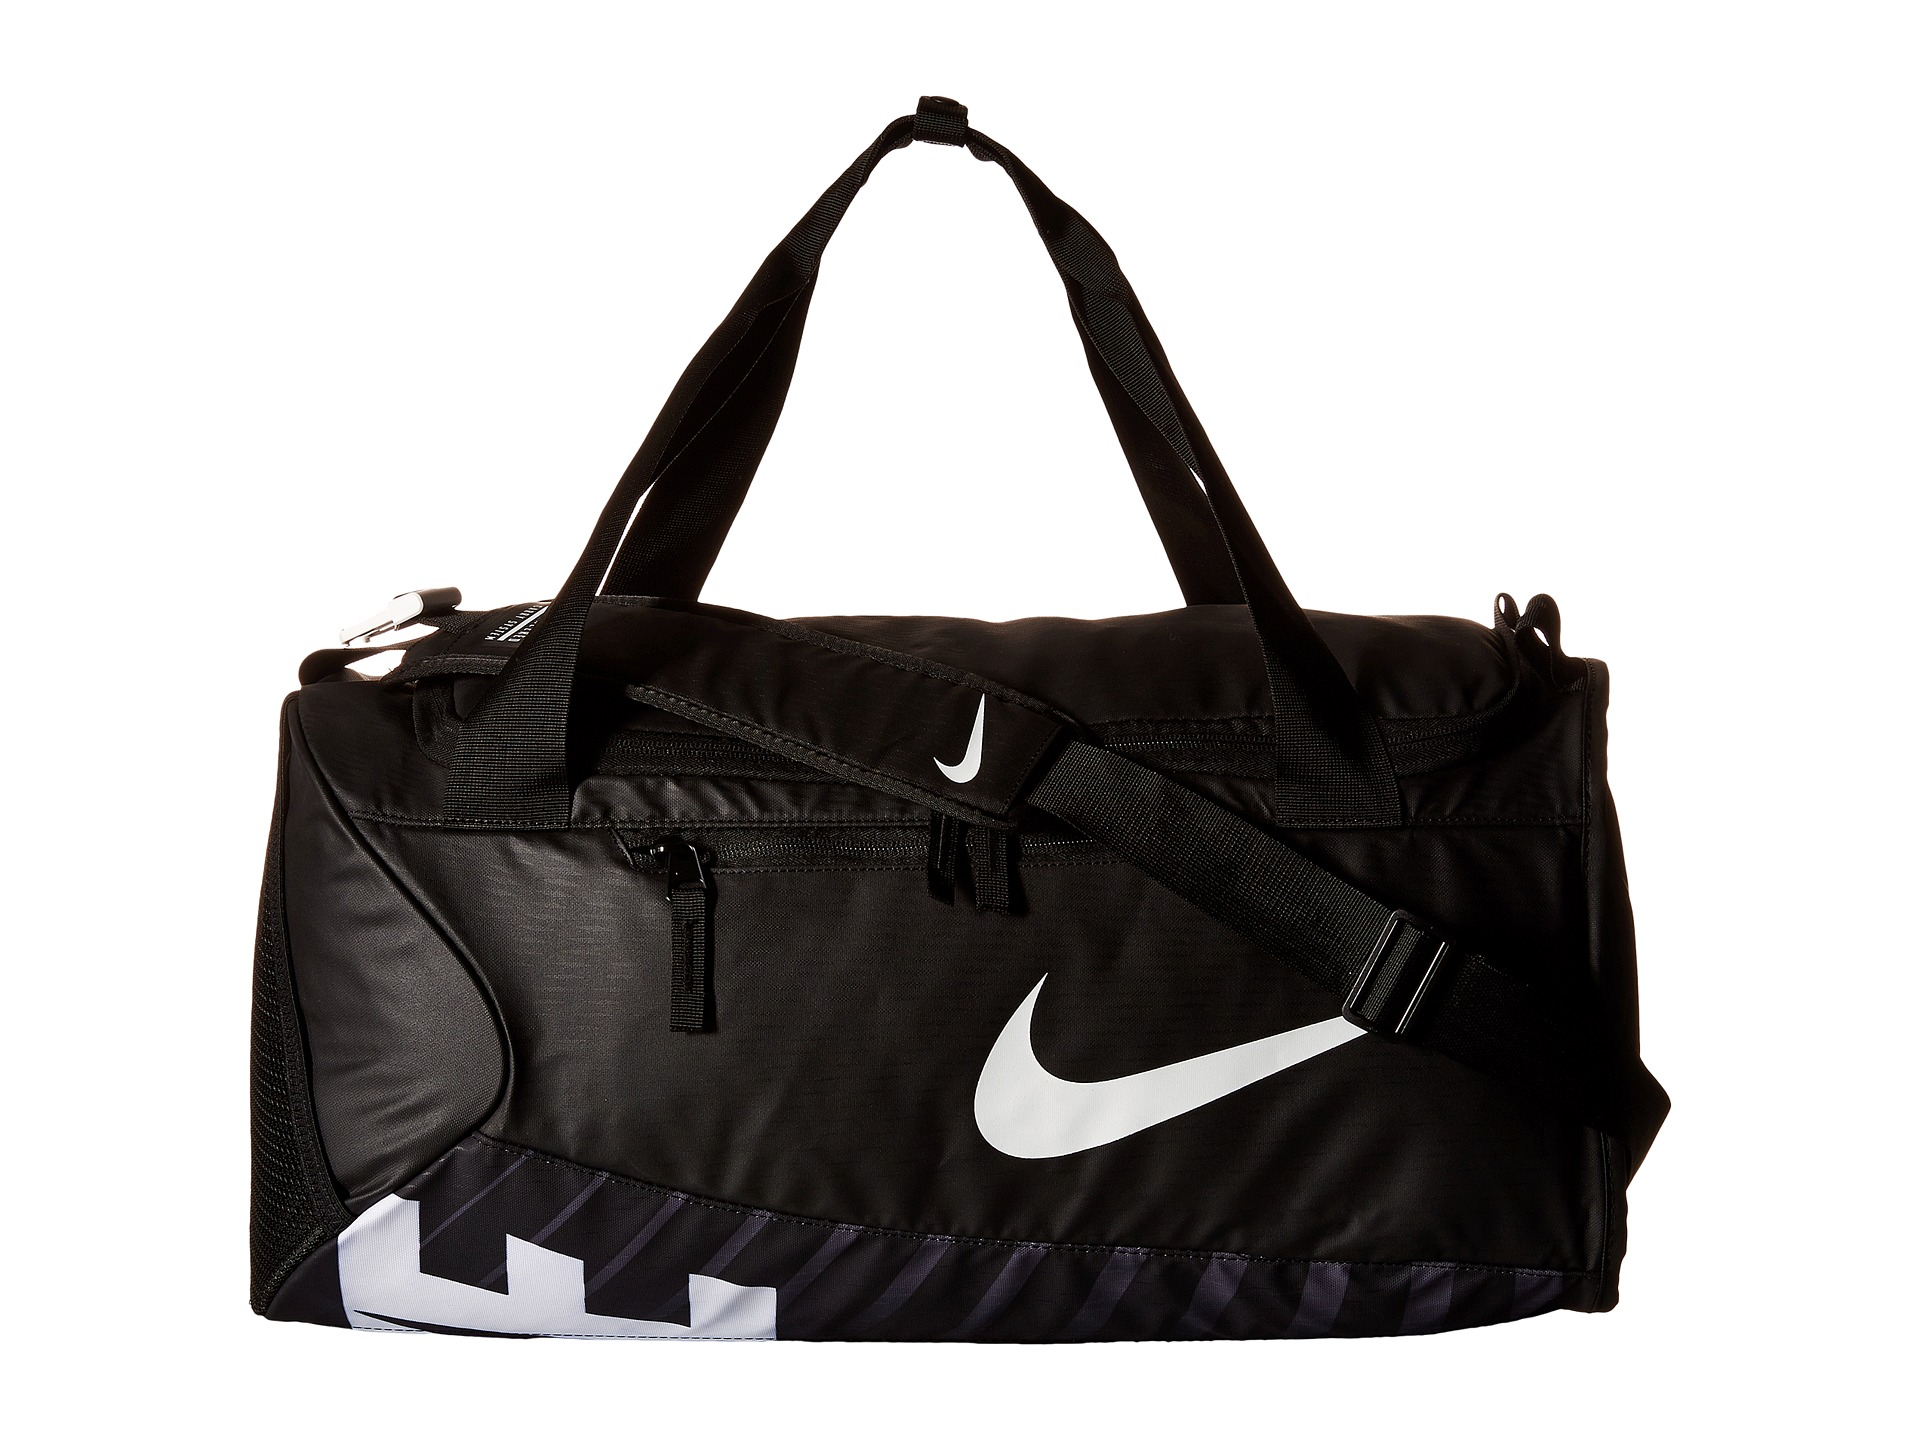 Unique Shop Black Nike YA TT Small Duffel Bag For Kids By Please Select A Brand   SSS